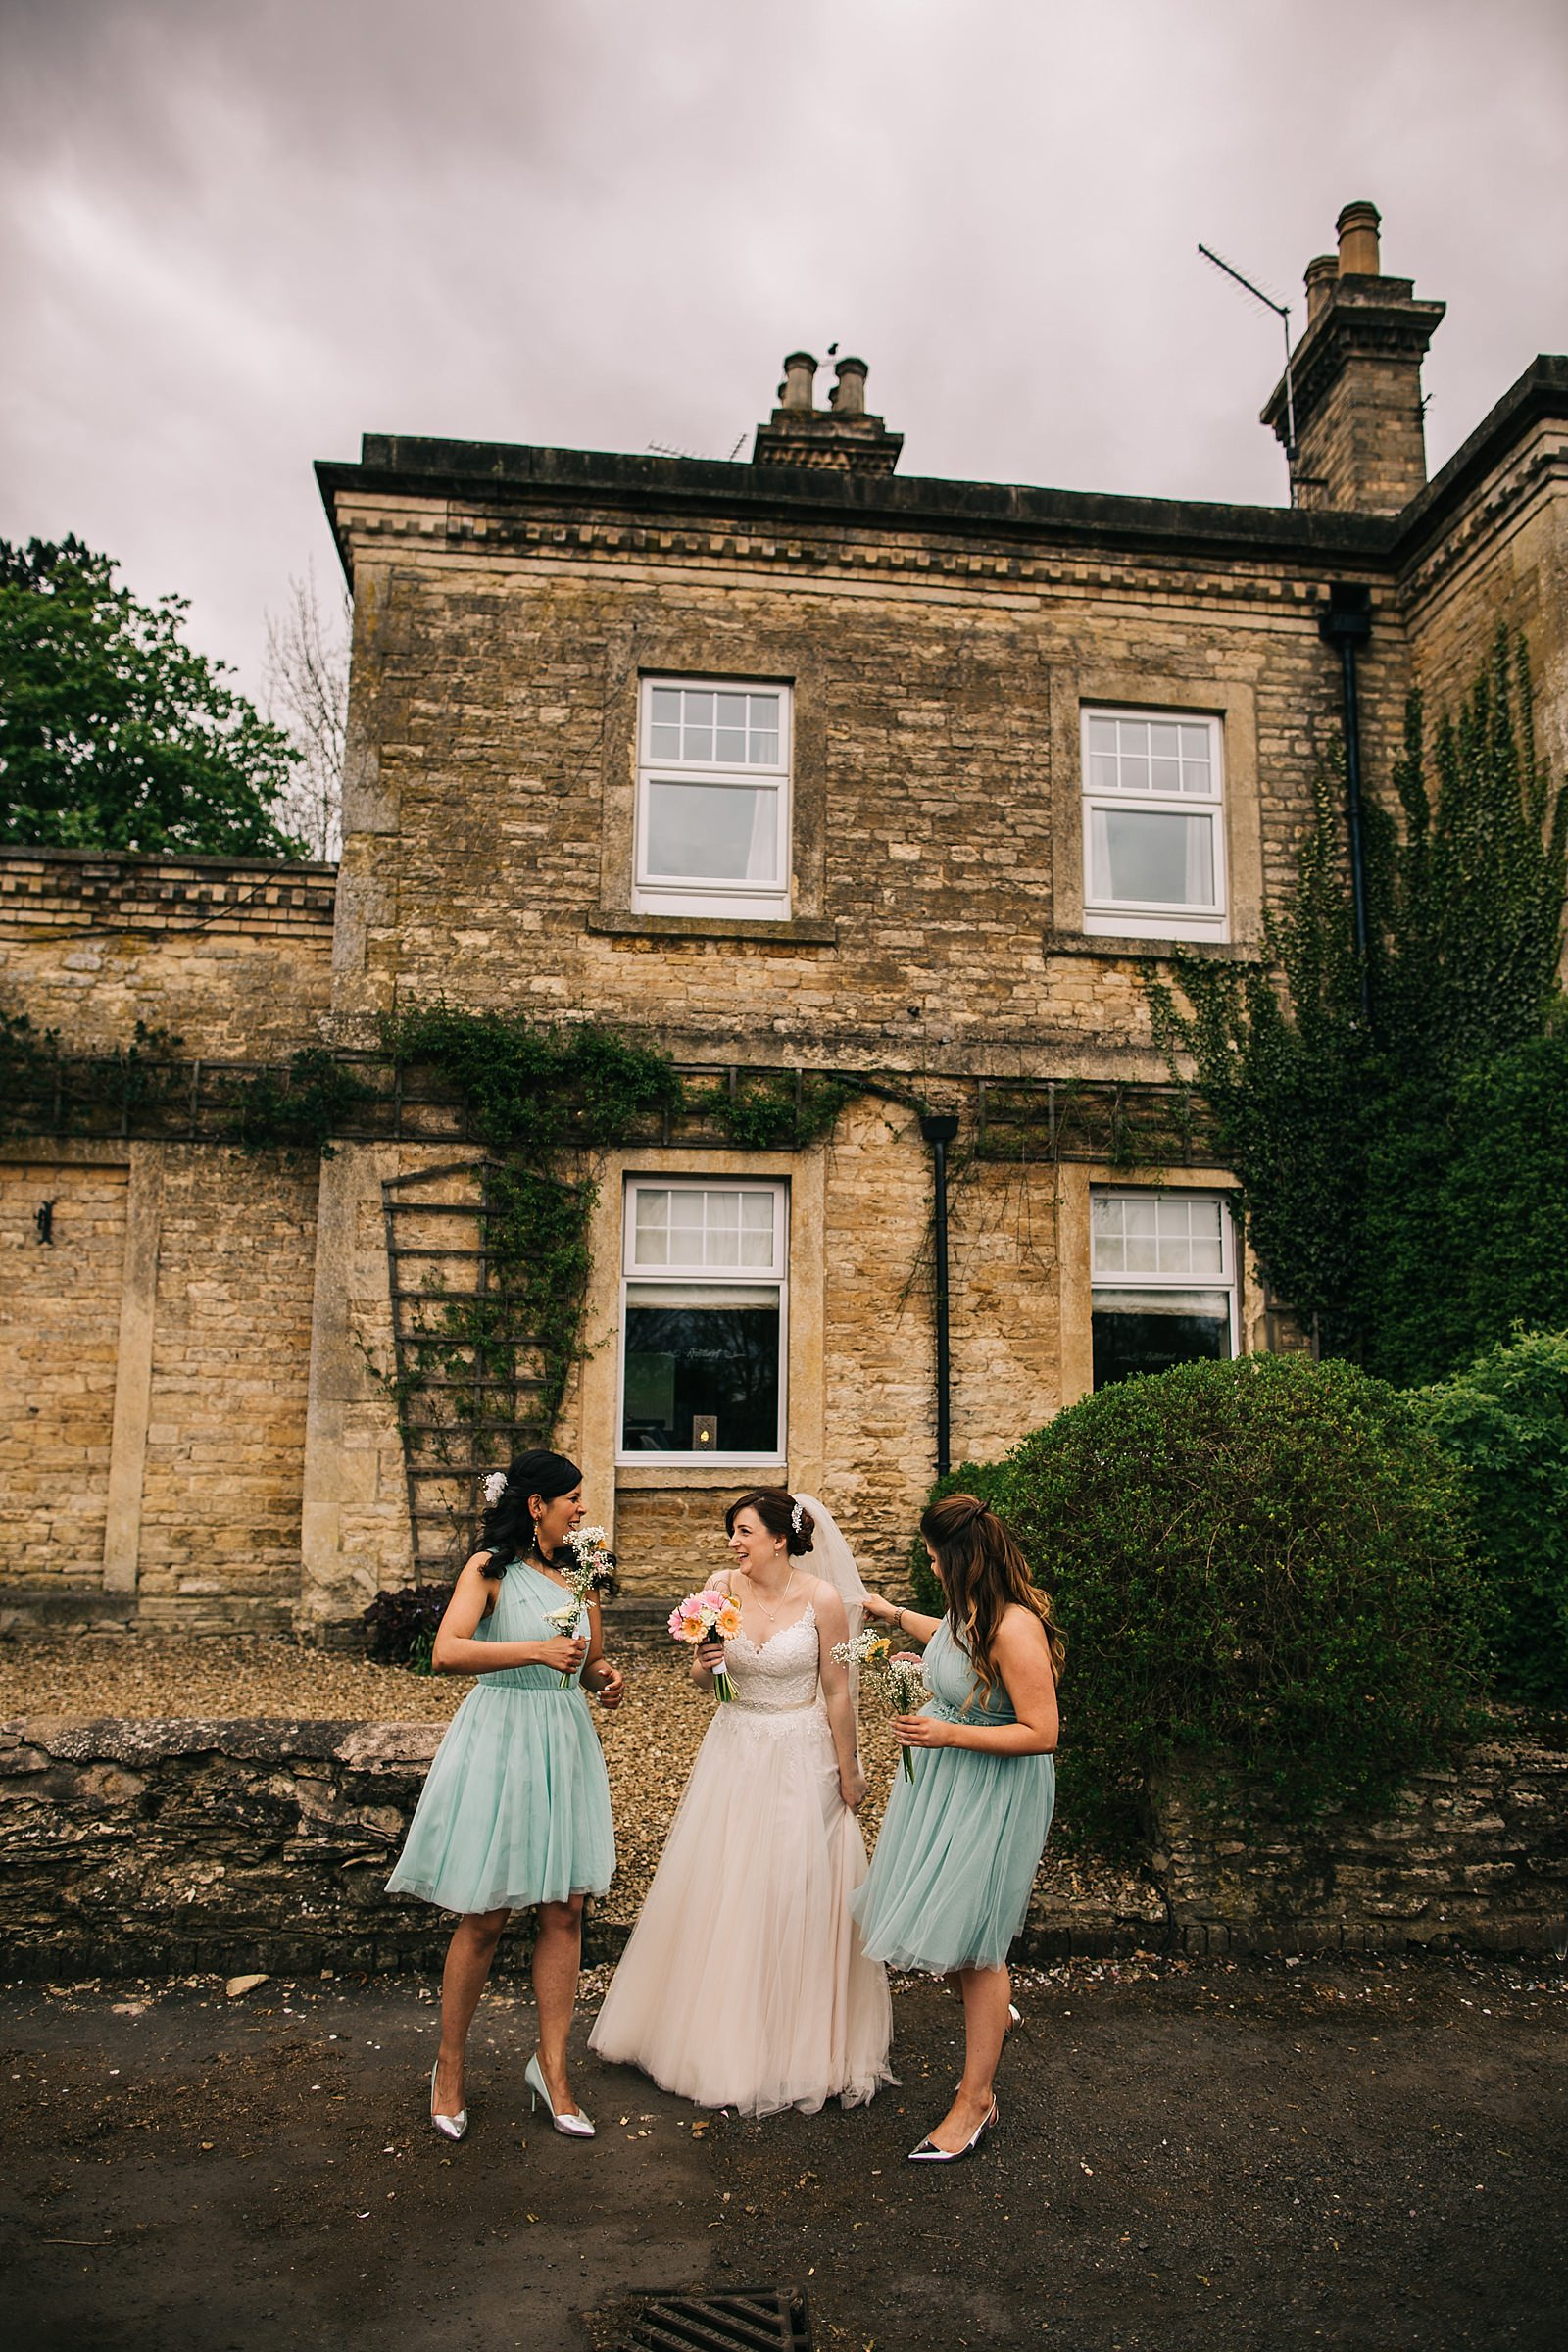 grace-josh-wedding-blisworth-the walnut-tree-inn-298